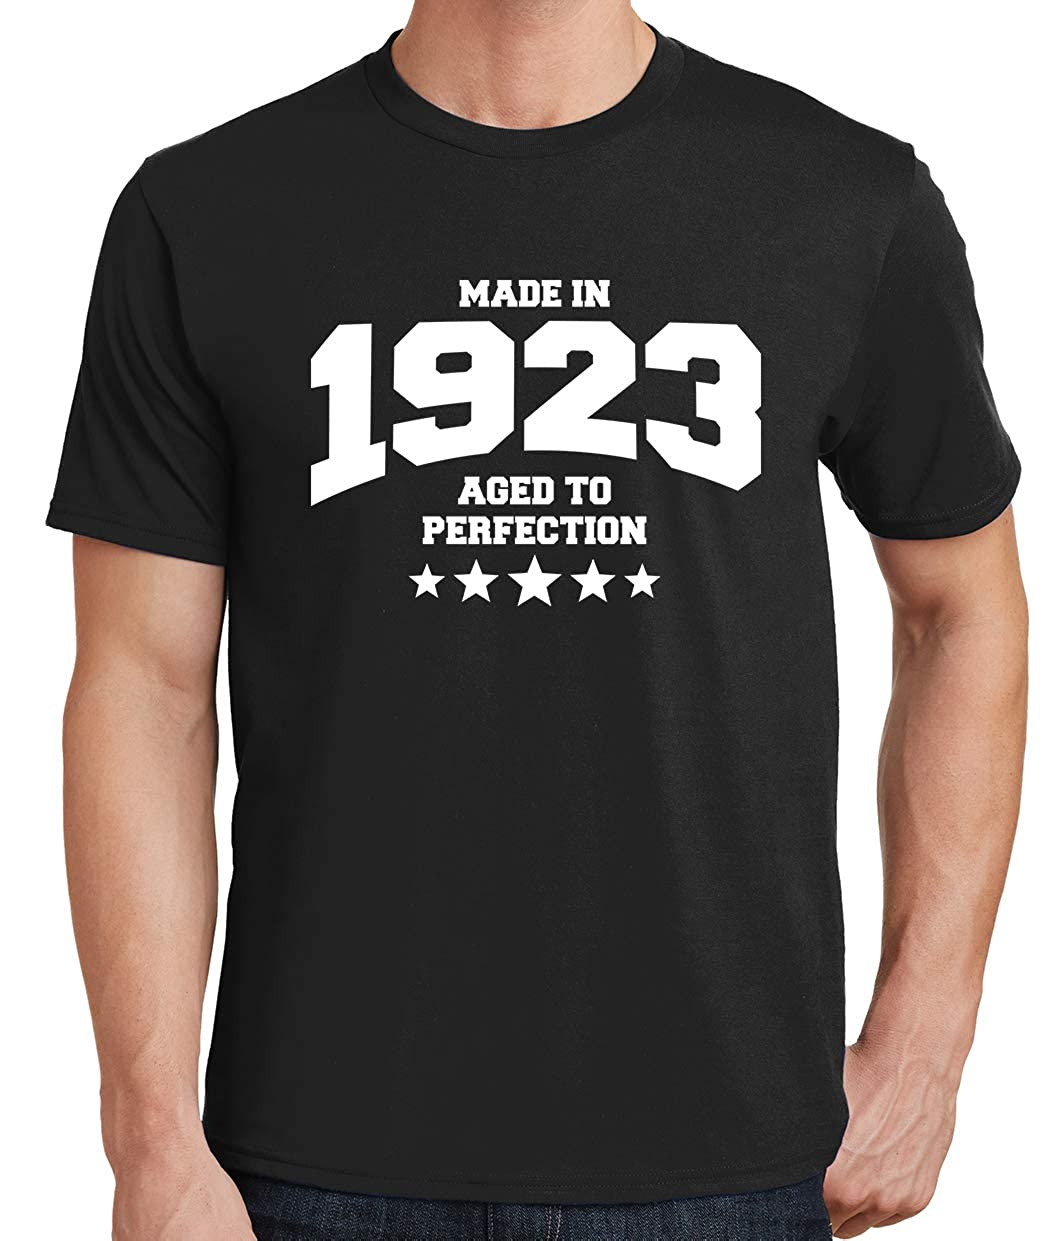 1923 T-Shirt Tenacitee Mens Athletic Aged to Perfection